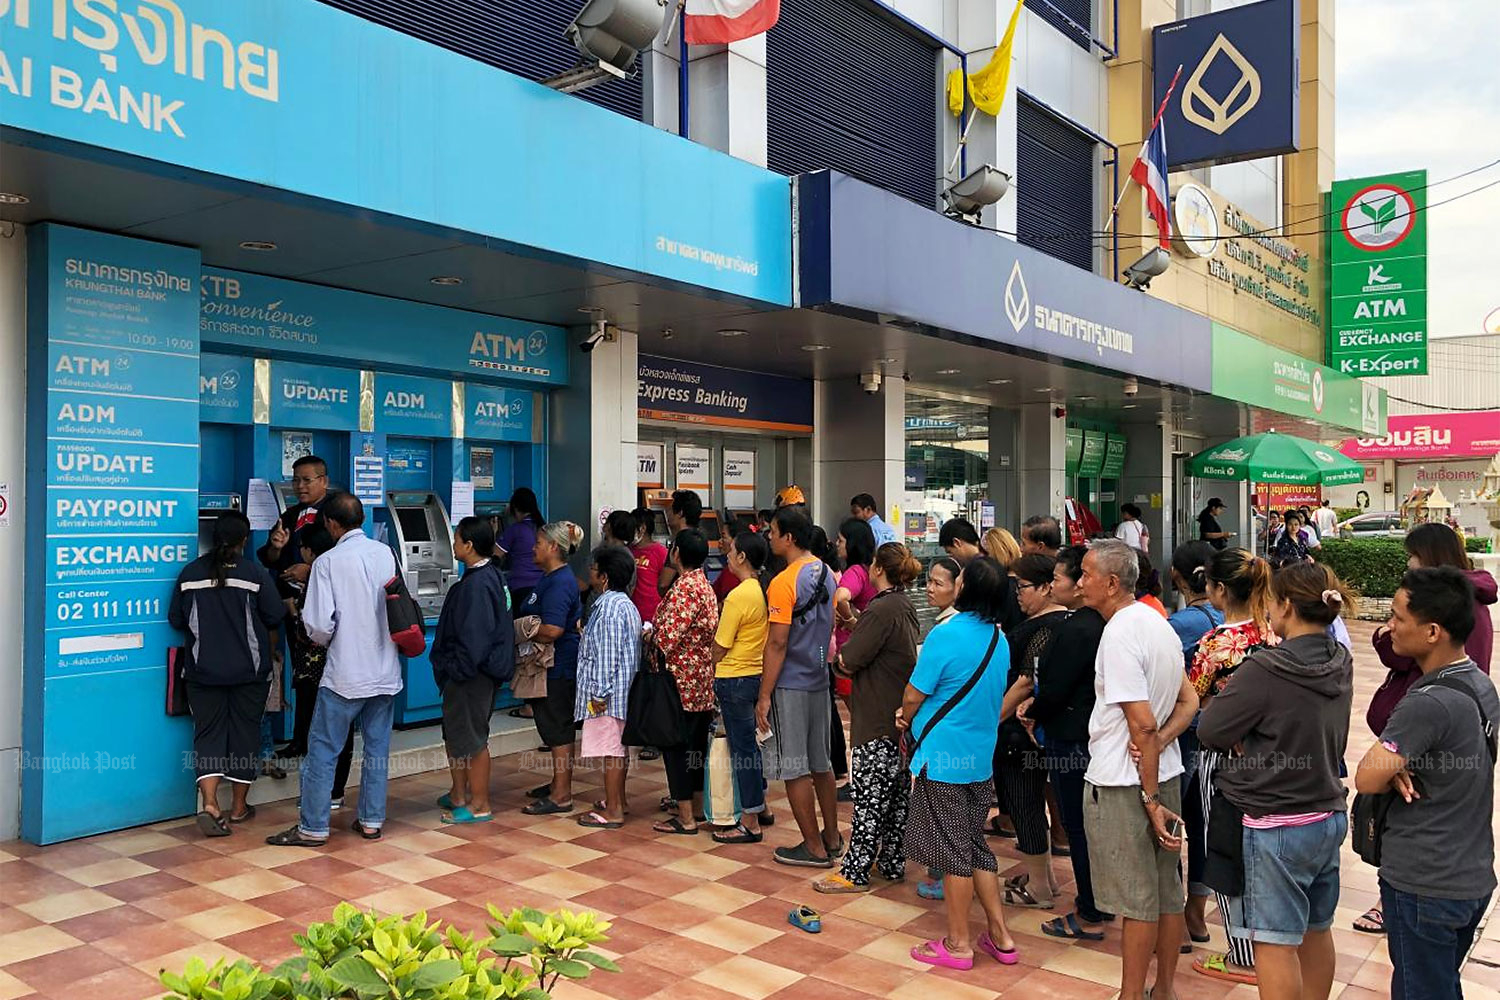 Welfare cardholders queue up to get cash at a Krungthai Bank ATM in Pathum Thani in December last year.(Photo by Sarot Meksophawannakul)